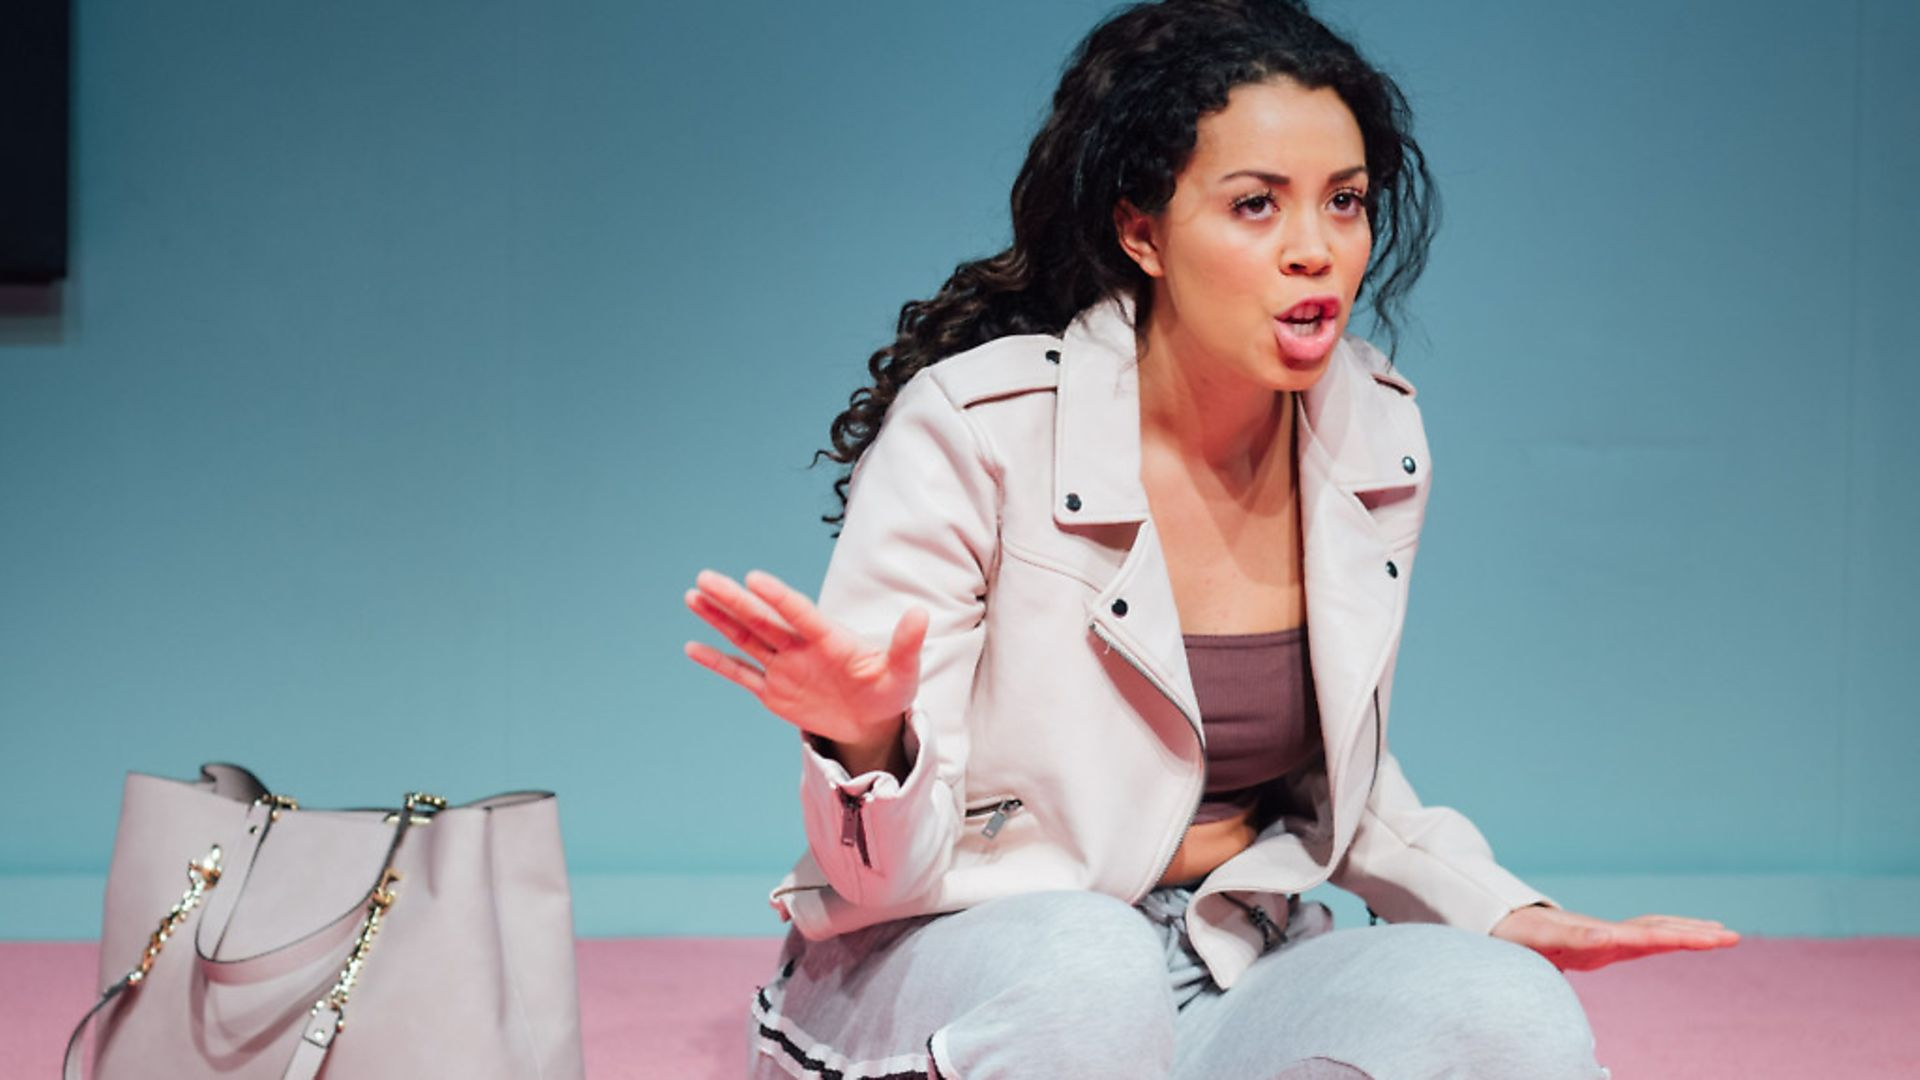 Nicôle Lecky performing in Superhoe. Picture: Helen Marray/Royal Court Theatre. - Credit: Helen Marray